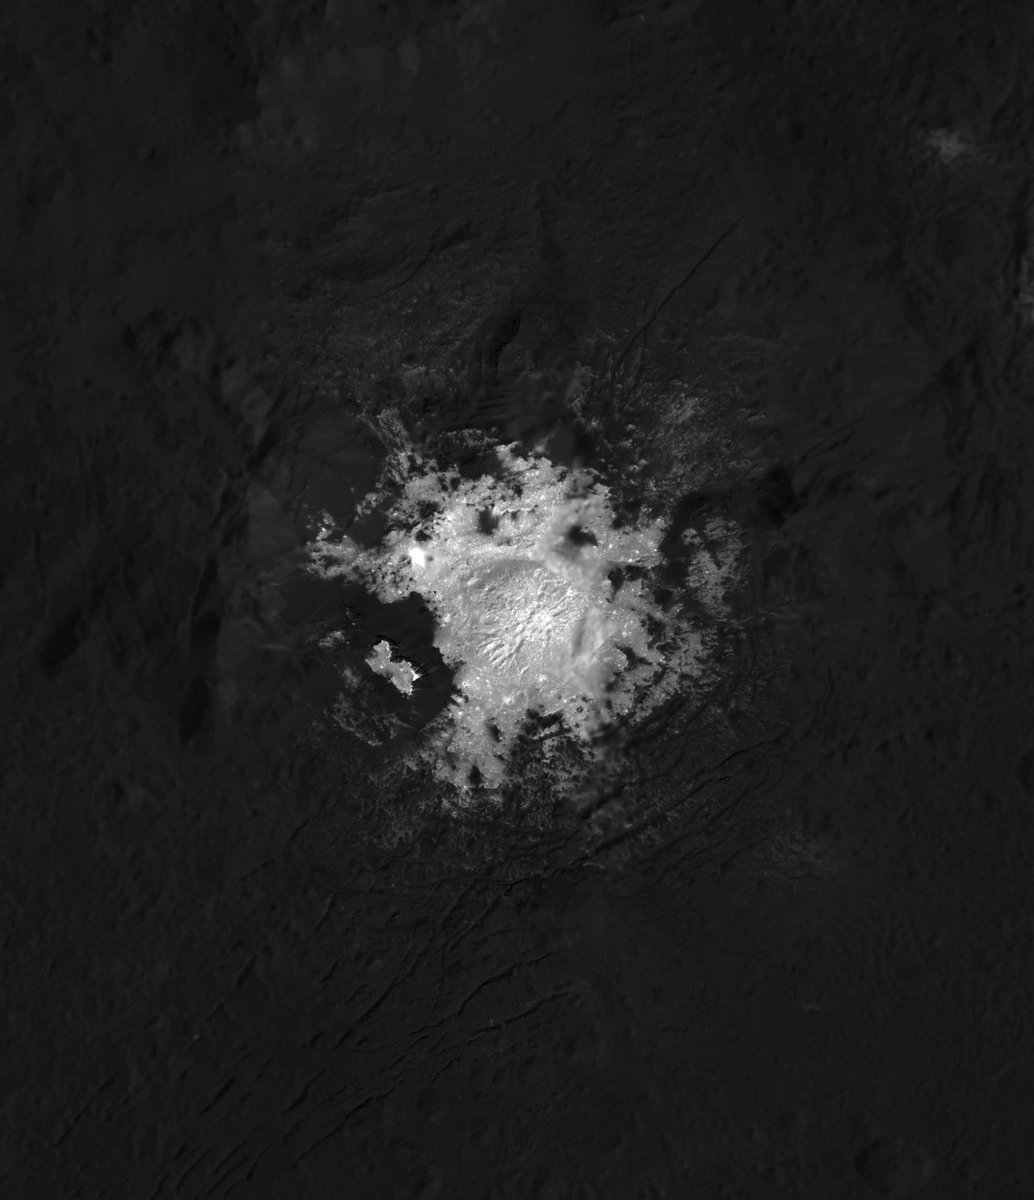 As the mission comes to a close, @NASA_Dawn will continue to capture the closest and most detailed photographs of dwarf planet #Ceres ever taken: https://t.co/ANE7agJycy